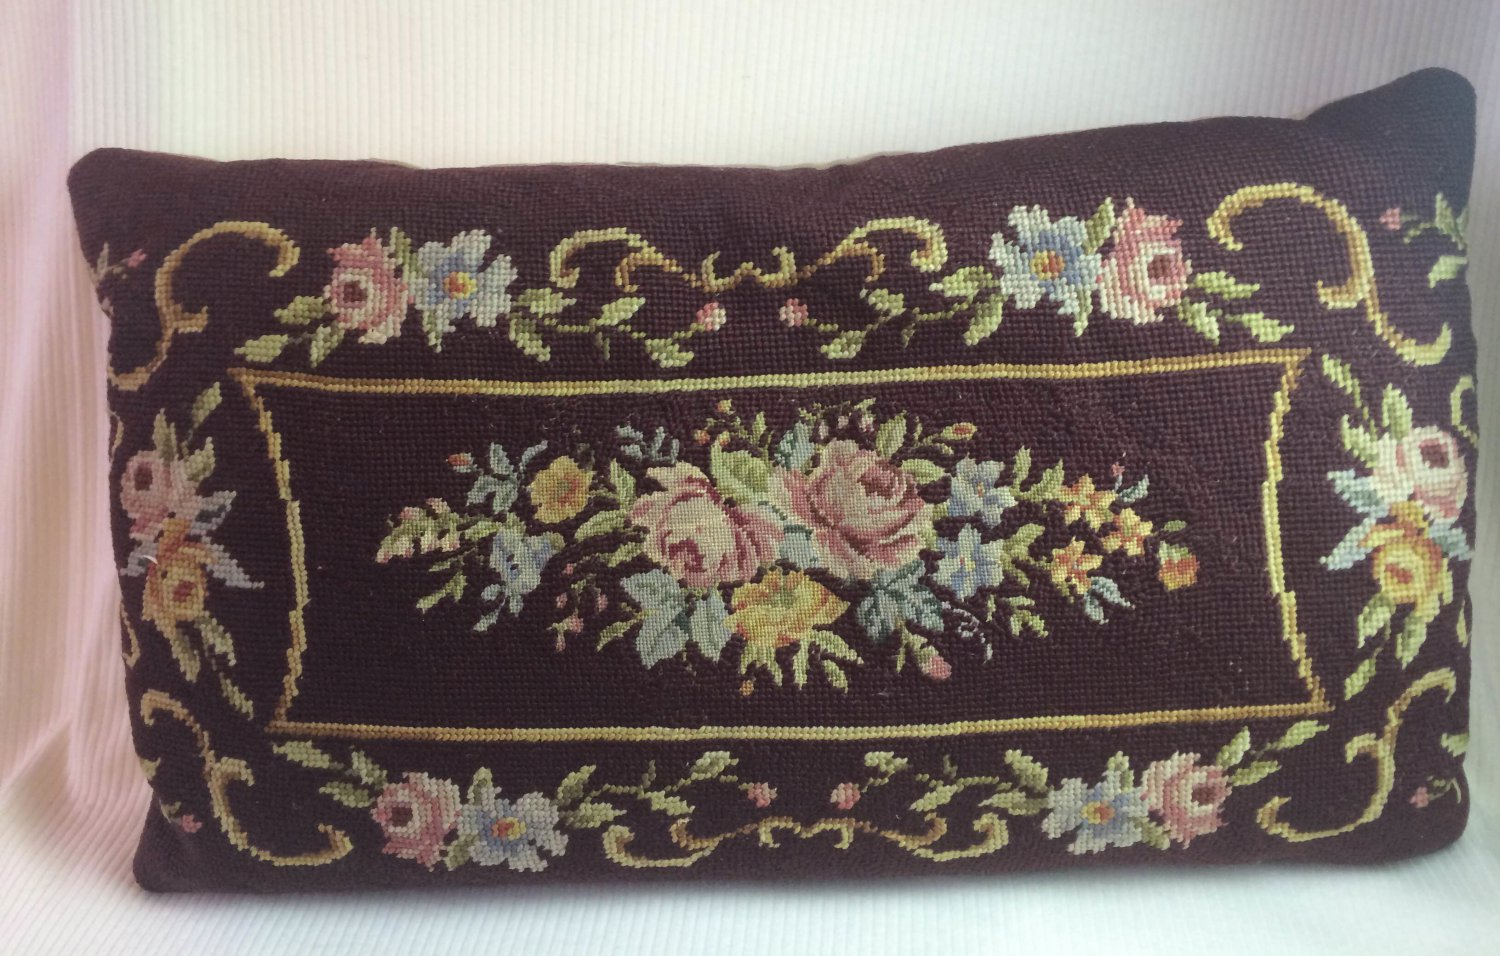 Vintage Needlepoint Pillow Brown w Pink Blue Rose Floral Design 19x11""